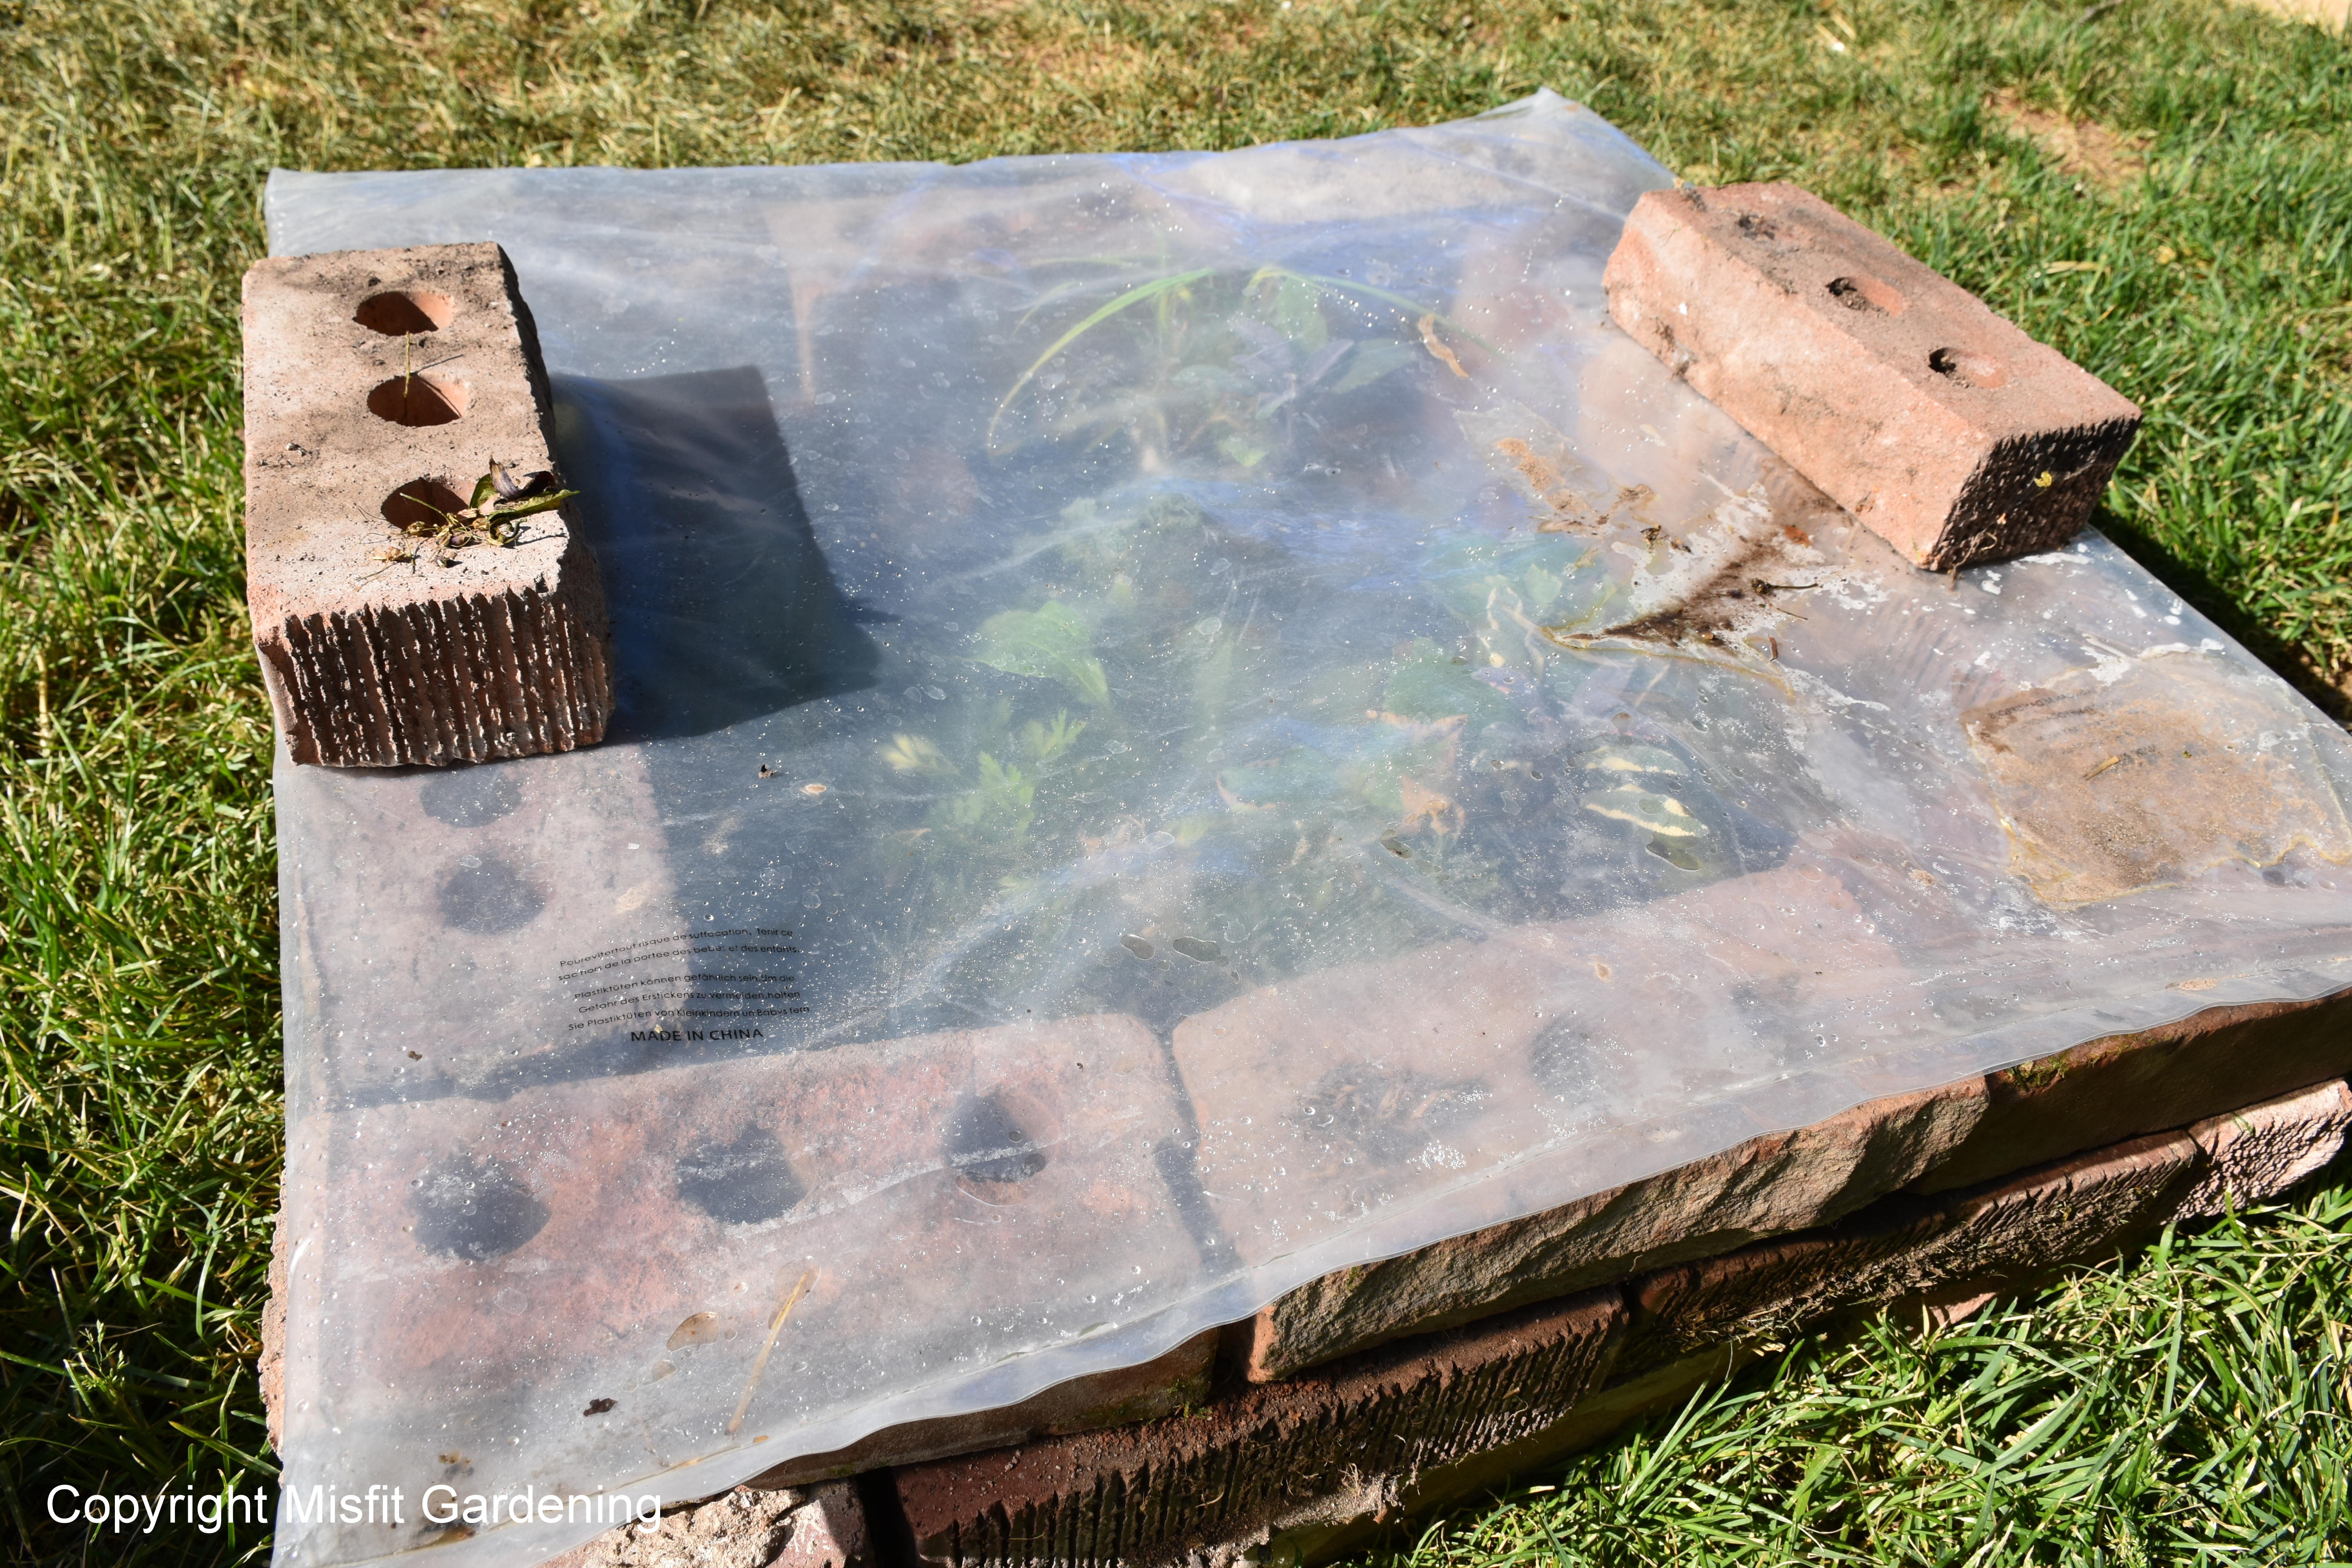 Build A Cheap Cold Frame That Will Save You Money This Year - Misfit